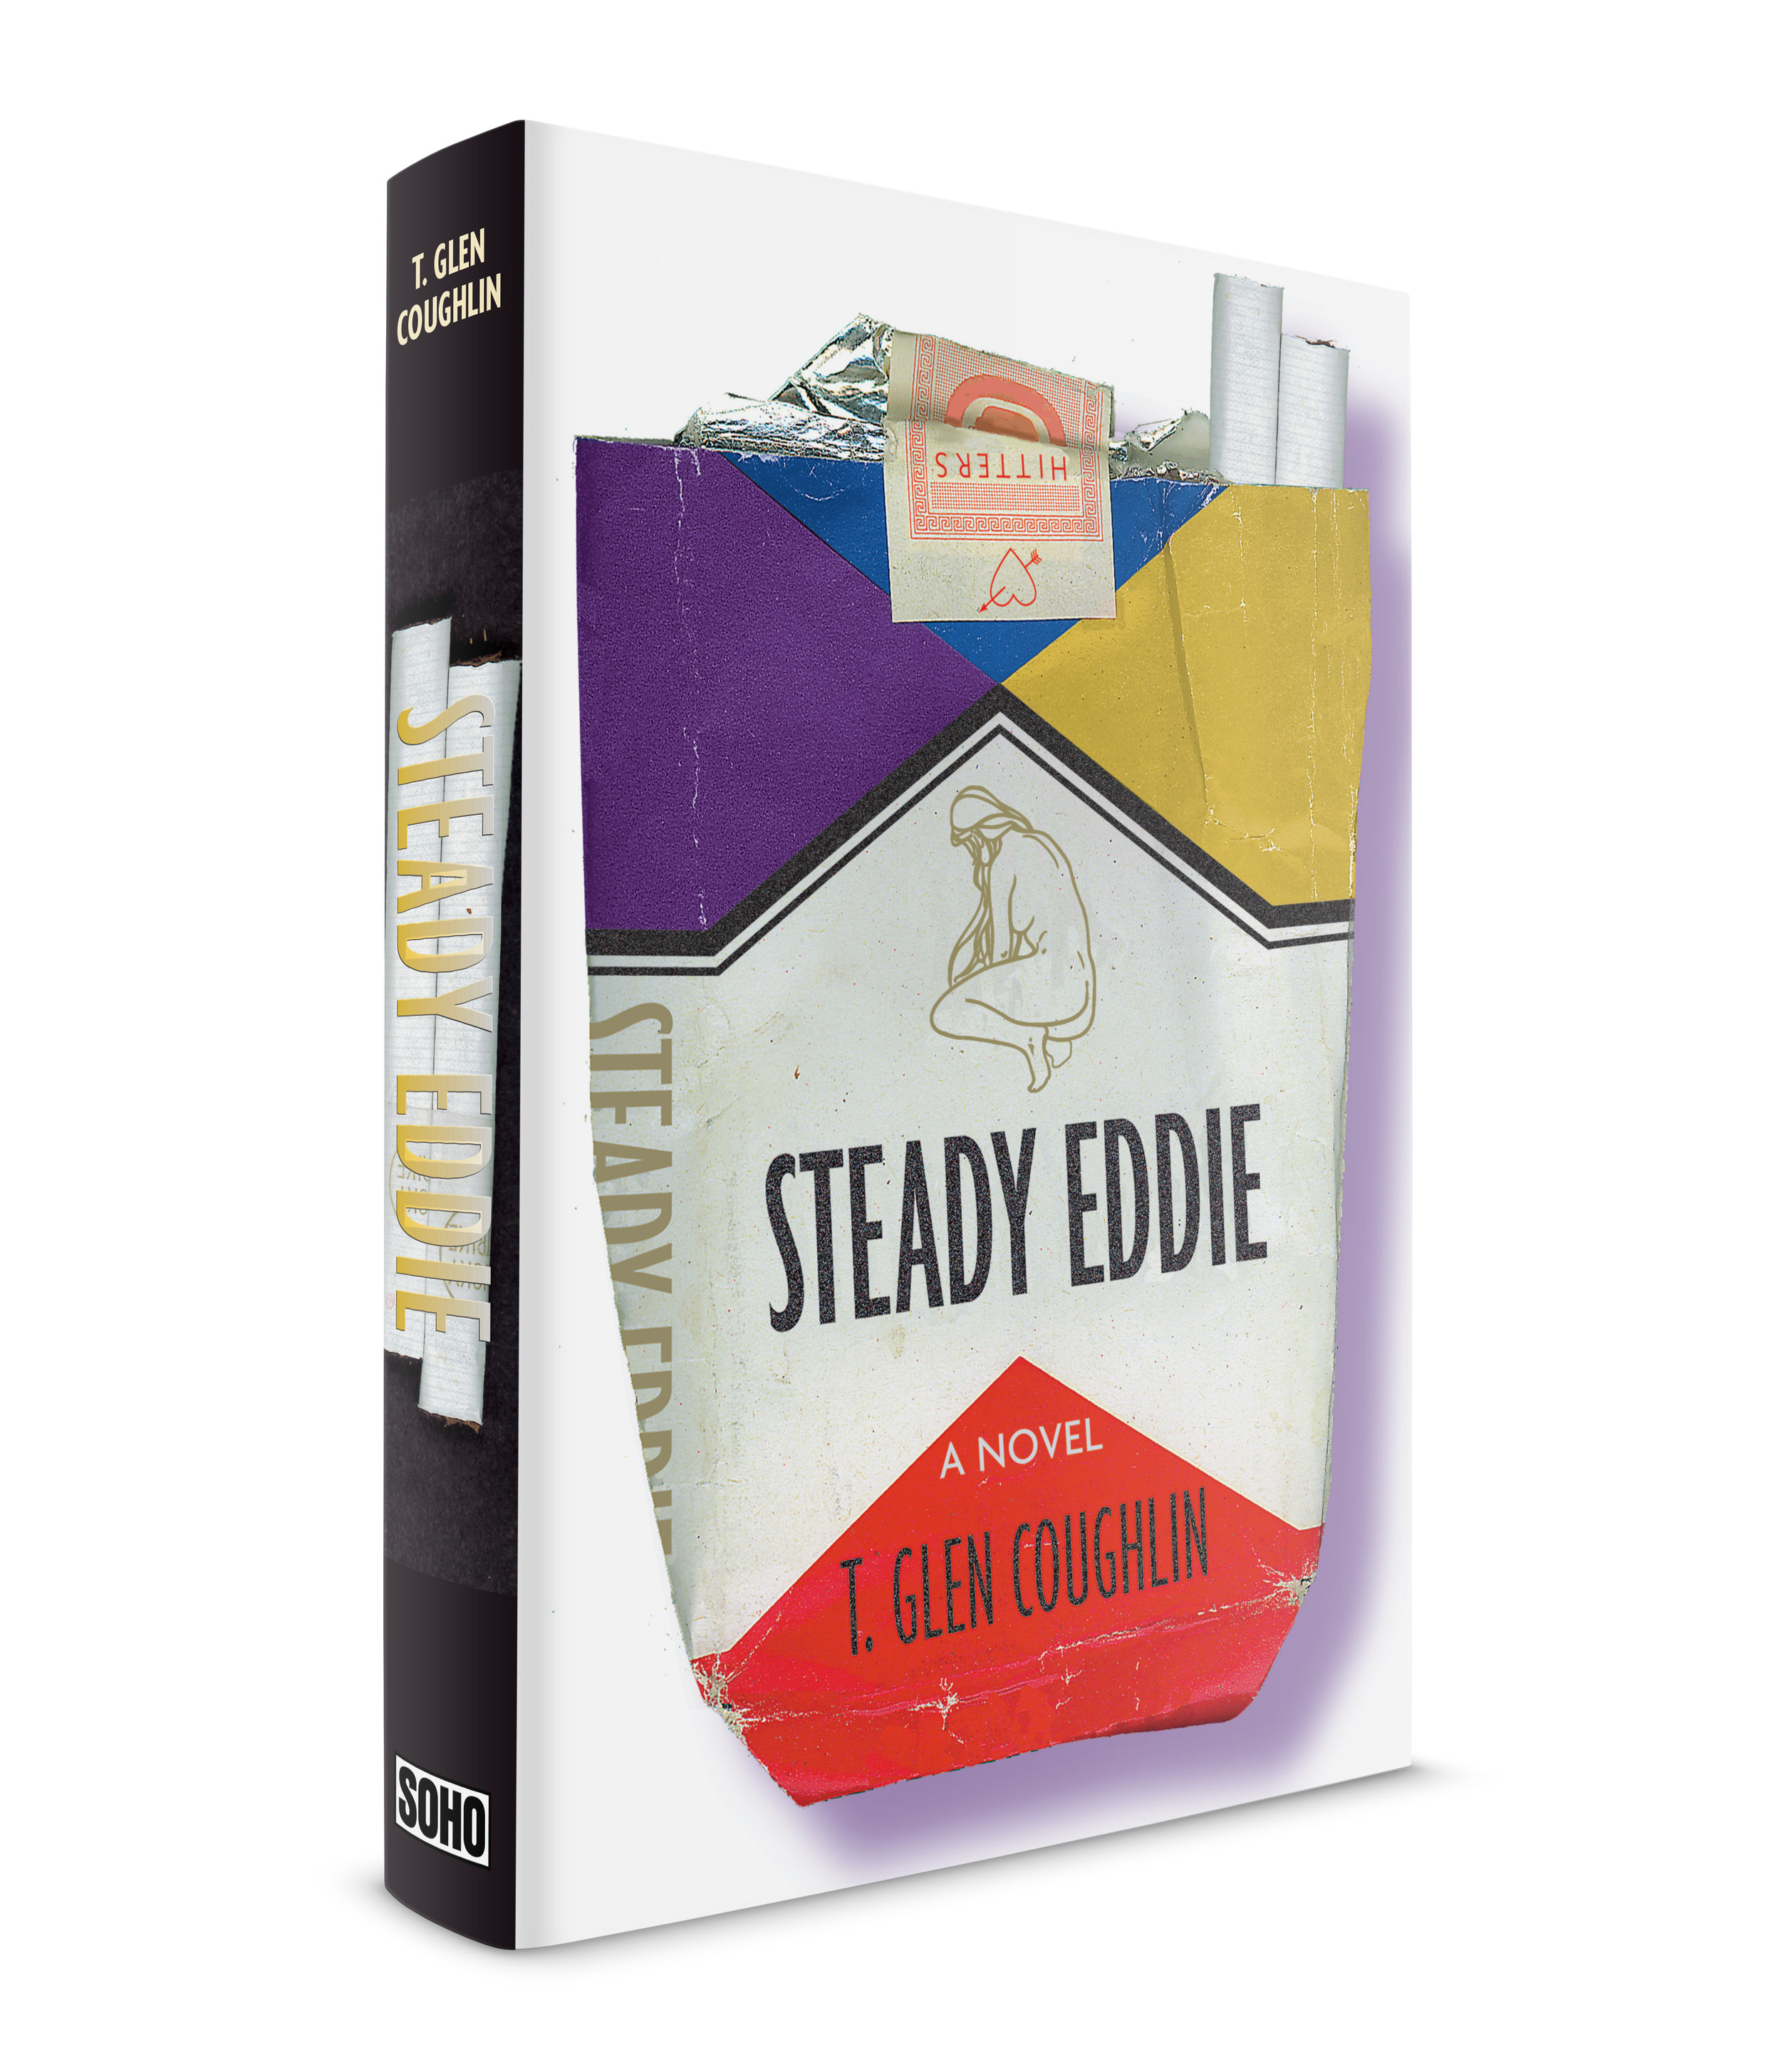 As any Book Designer knows, most jacket layouts get rejected. This was a rejected cover for, Steady Eddie, by T. Glen Coughlin, published by Soho Press. A couple of tough guys growing up on Long Island, one has an uncle in the mob, the other's father takes photos for a skin magazine. Townies these boys are known as, or hitters. Everyone at Soho liked this one but they went with another cover that had, perhaps, a wider appeal.